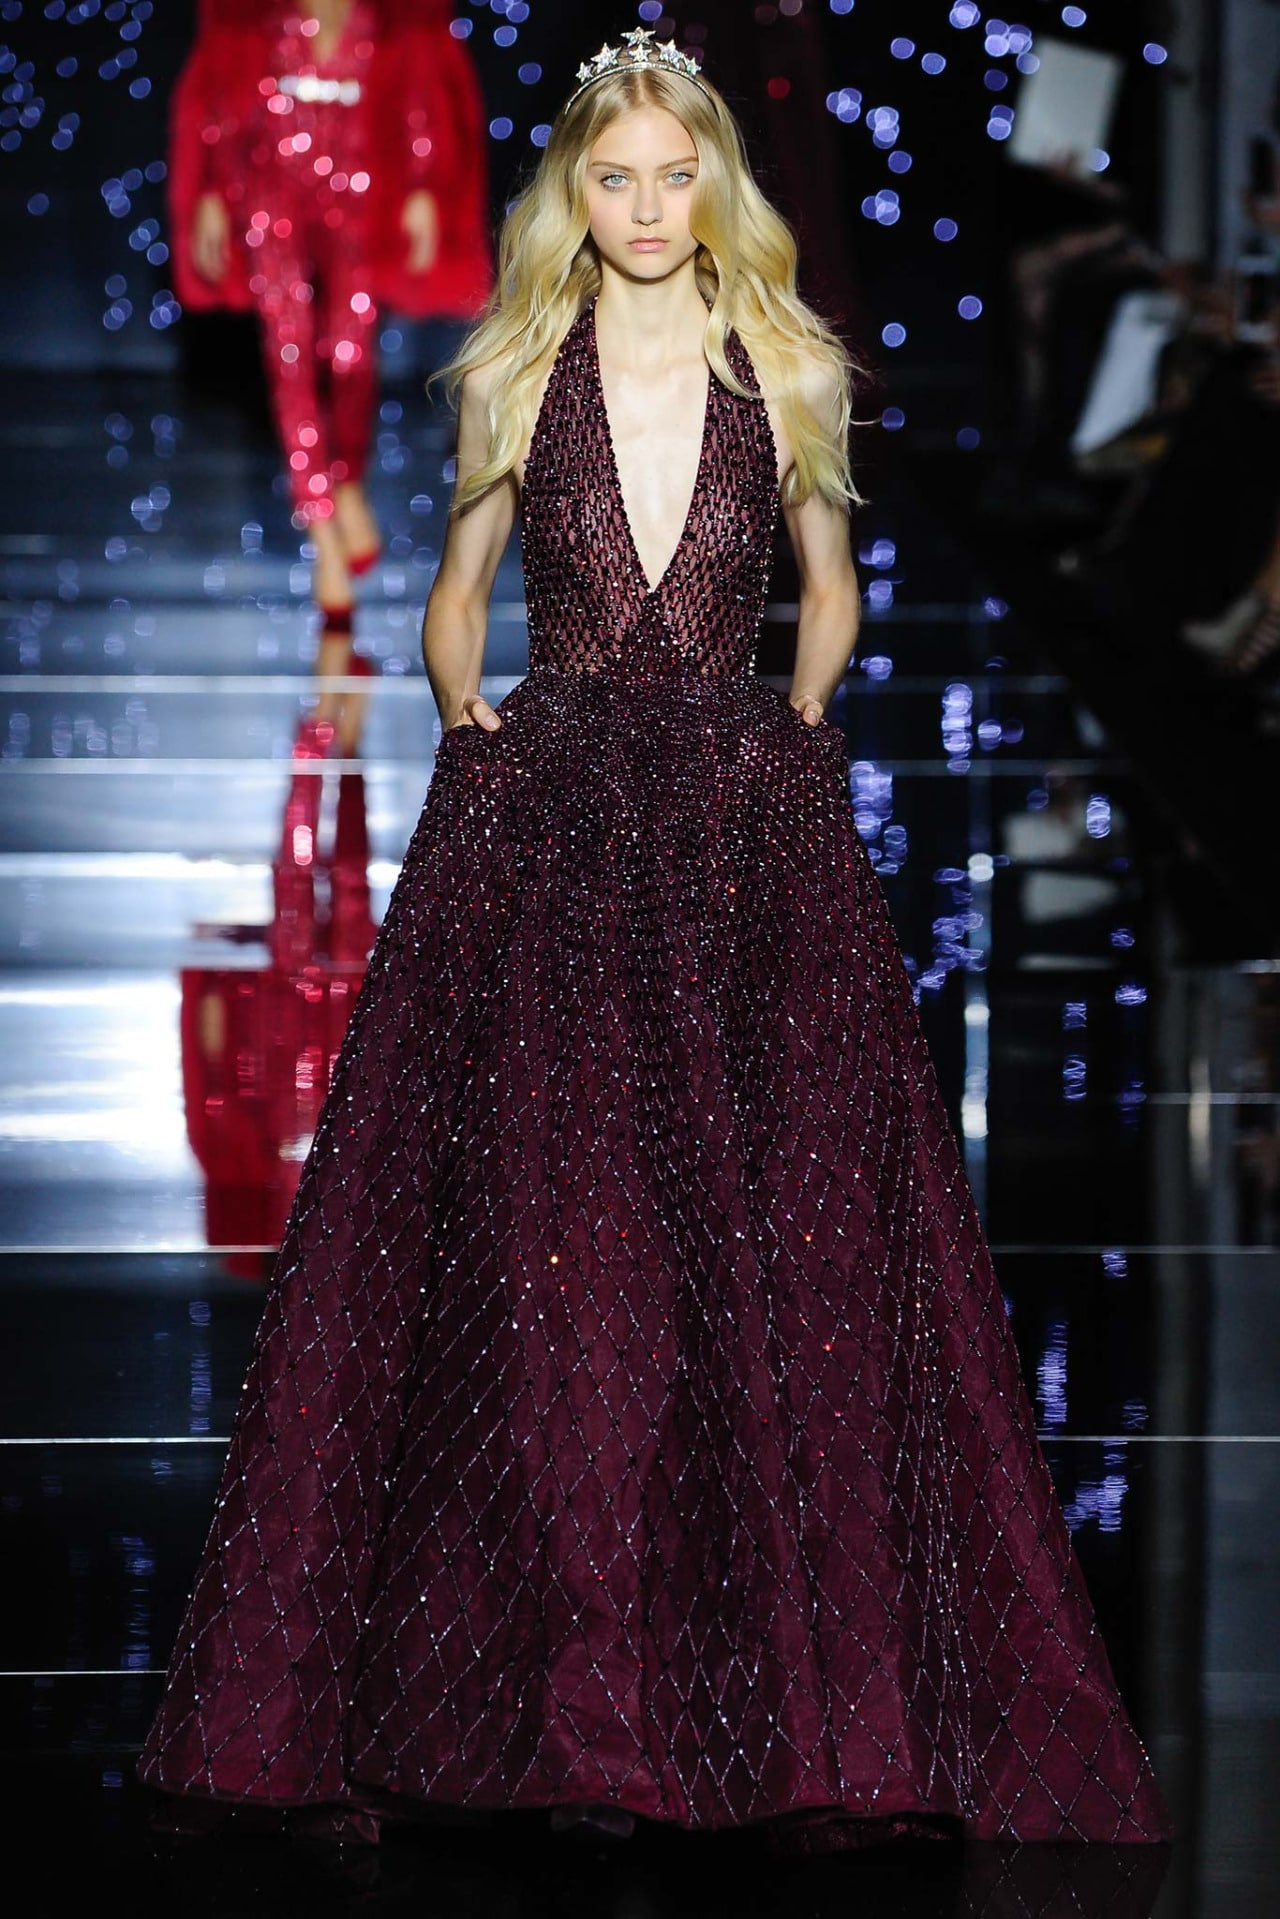 zuhair-murad-fall-2015-collection-7